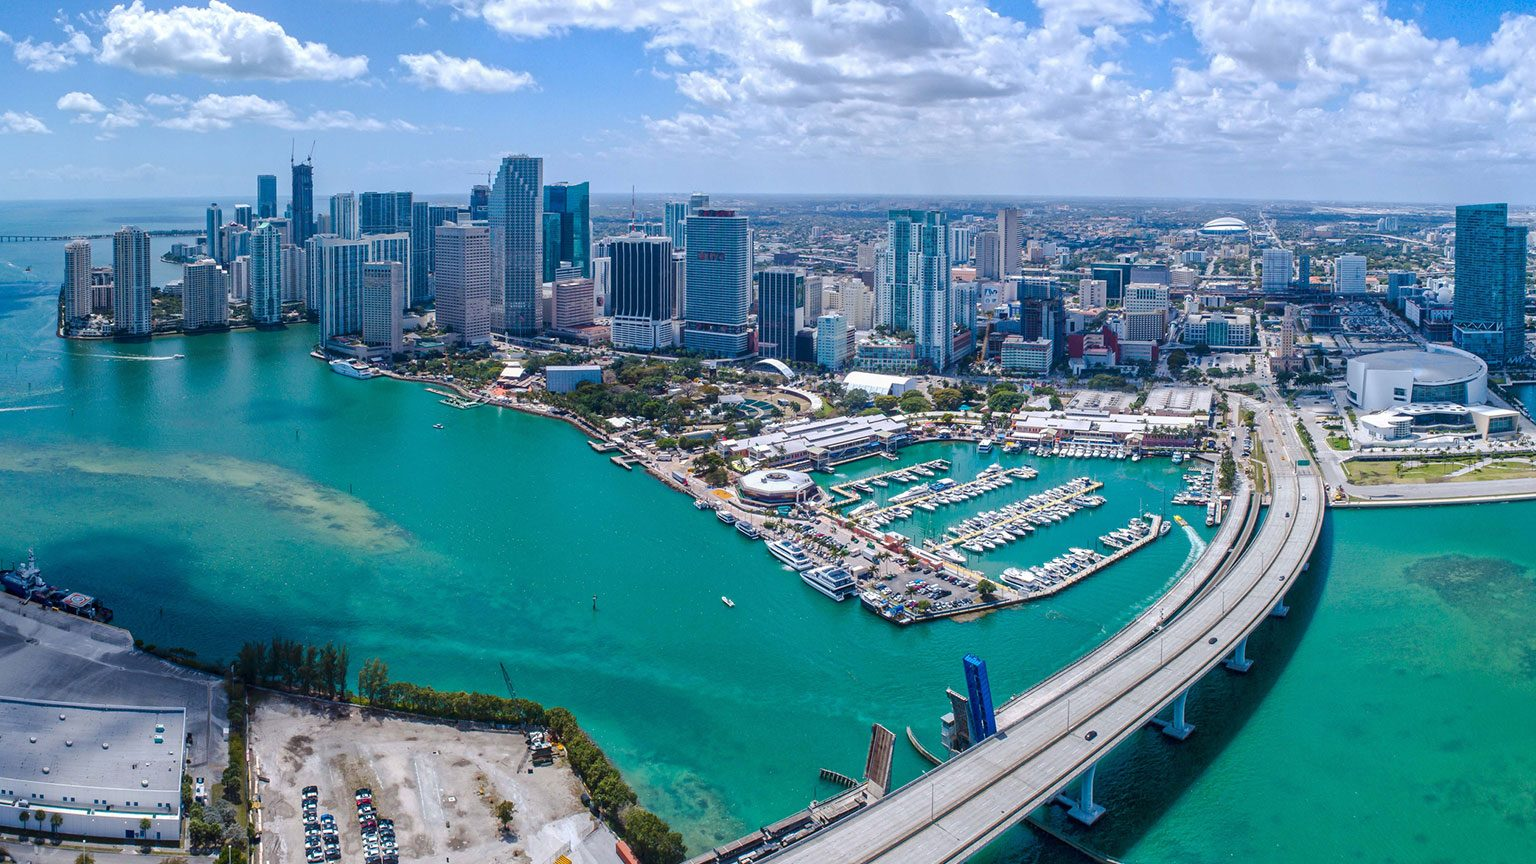 Aerial view of port of Miami